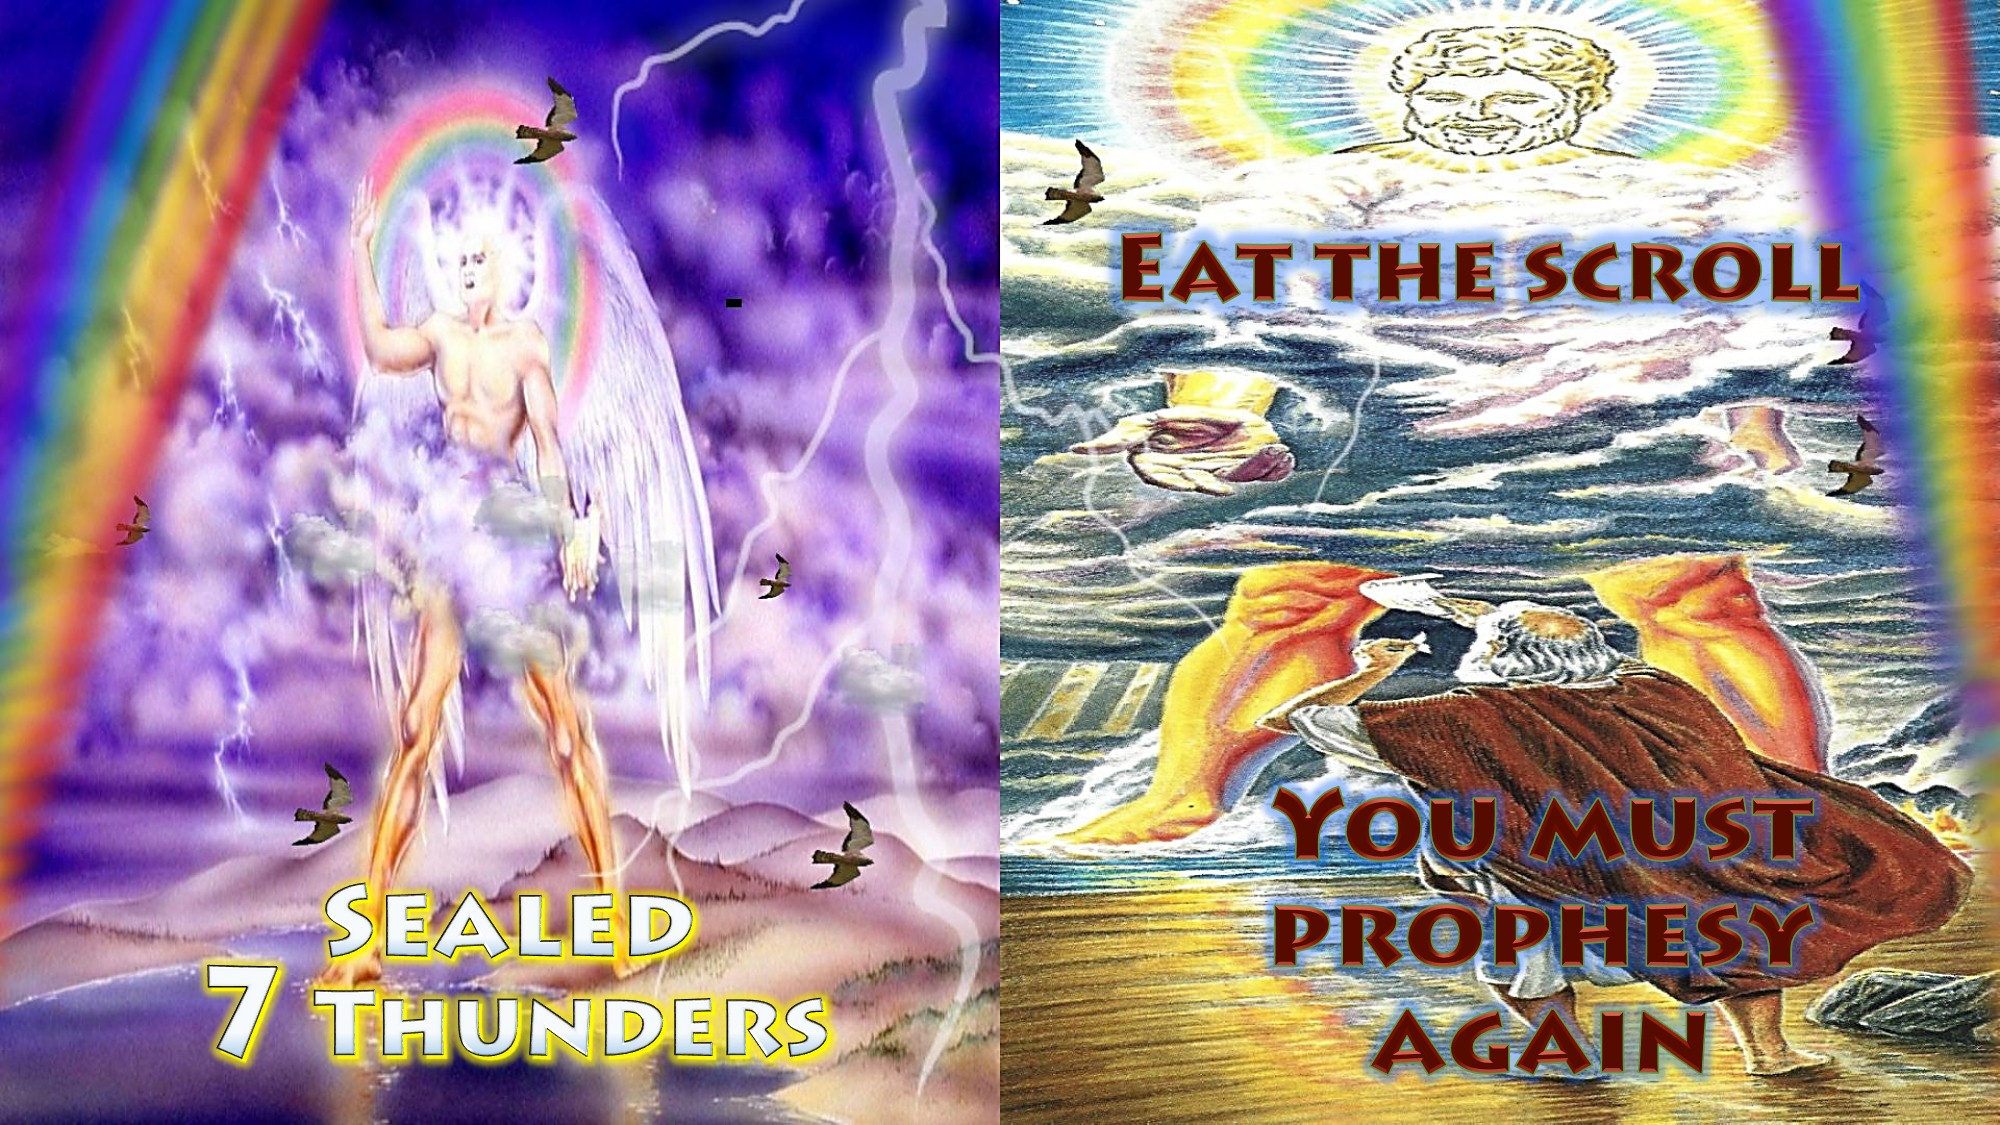 Sixth Trumpet,6th Trumpet,trumpet 6,Woe 2,2nd Woe,2nd Terrible Judgment,4 angels released,river Euphrates,Euphrates,200000000,two hundred million,Army,fire,smoke,sulfur,Kill Third,3 plagues,from mouths,Sealed,Seven Thunders,Sealed 7 Thunders,7 Thunders Sealed,Revelation 9,Revelation Chapter 9,Angle,rainbow over head,little scroll,Eat Scroll,do not write it down,mystery of God,Prophesy,sweet in mouth,bitter in stomach,sweet as honey,prophesy again,nations,languages,kings,Revelation 10,Revelation Chapter 10,42 Months,Trample Holy City,Holy City,Measure temple,Two Witnesses 1,260 Days,3.5 years,2 witnesses,two witnesses,1260 days,dressed in sackcloth,t olive trees,2 lampstands,no rain,power,turn water to blood,Great City,Come up here,Revelation 11,Revelation Chapter 11,Seven Trumpets,Apocalypse